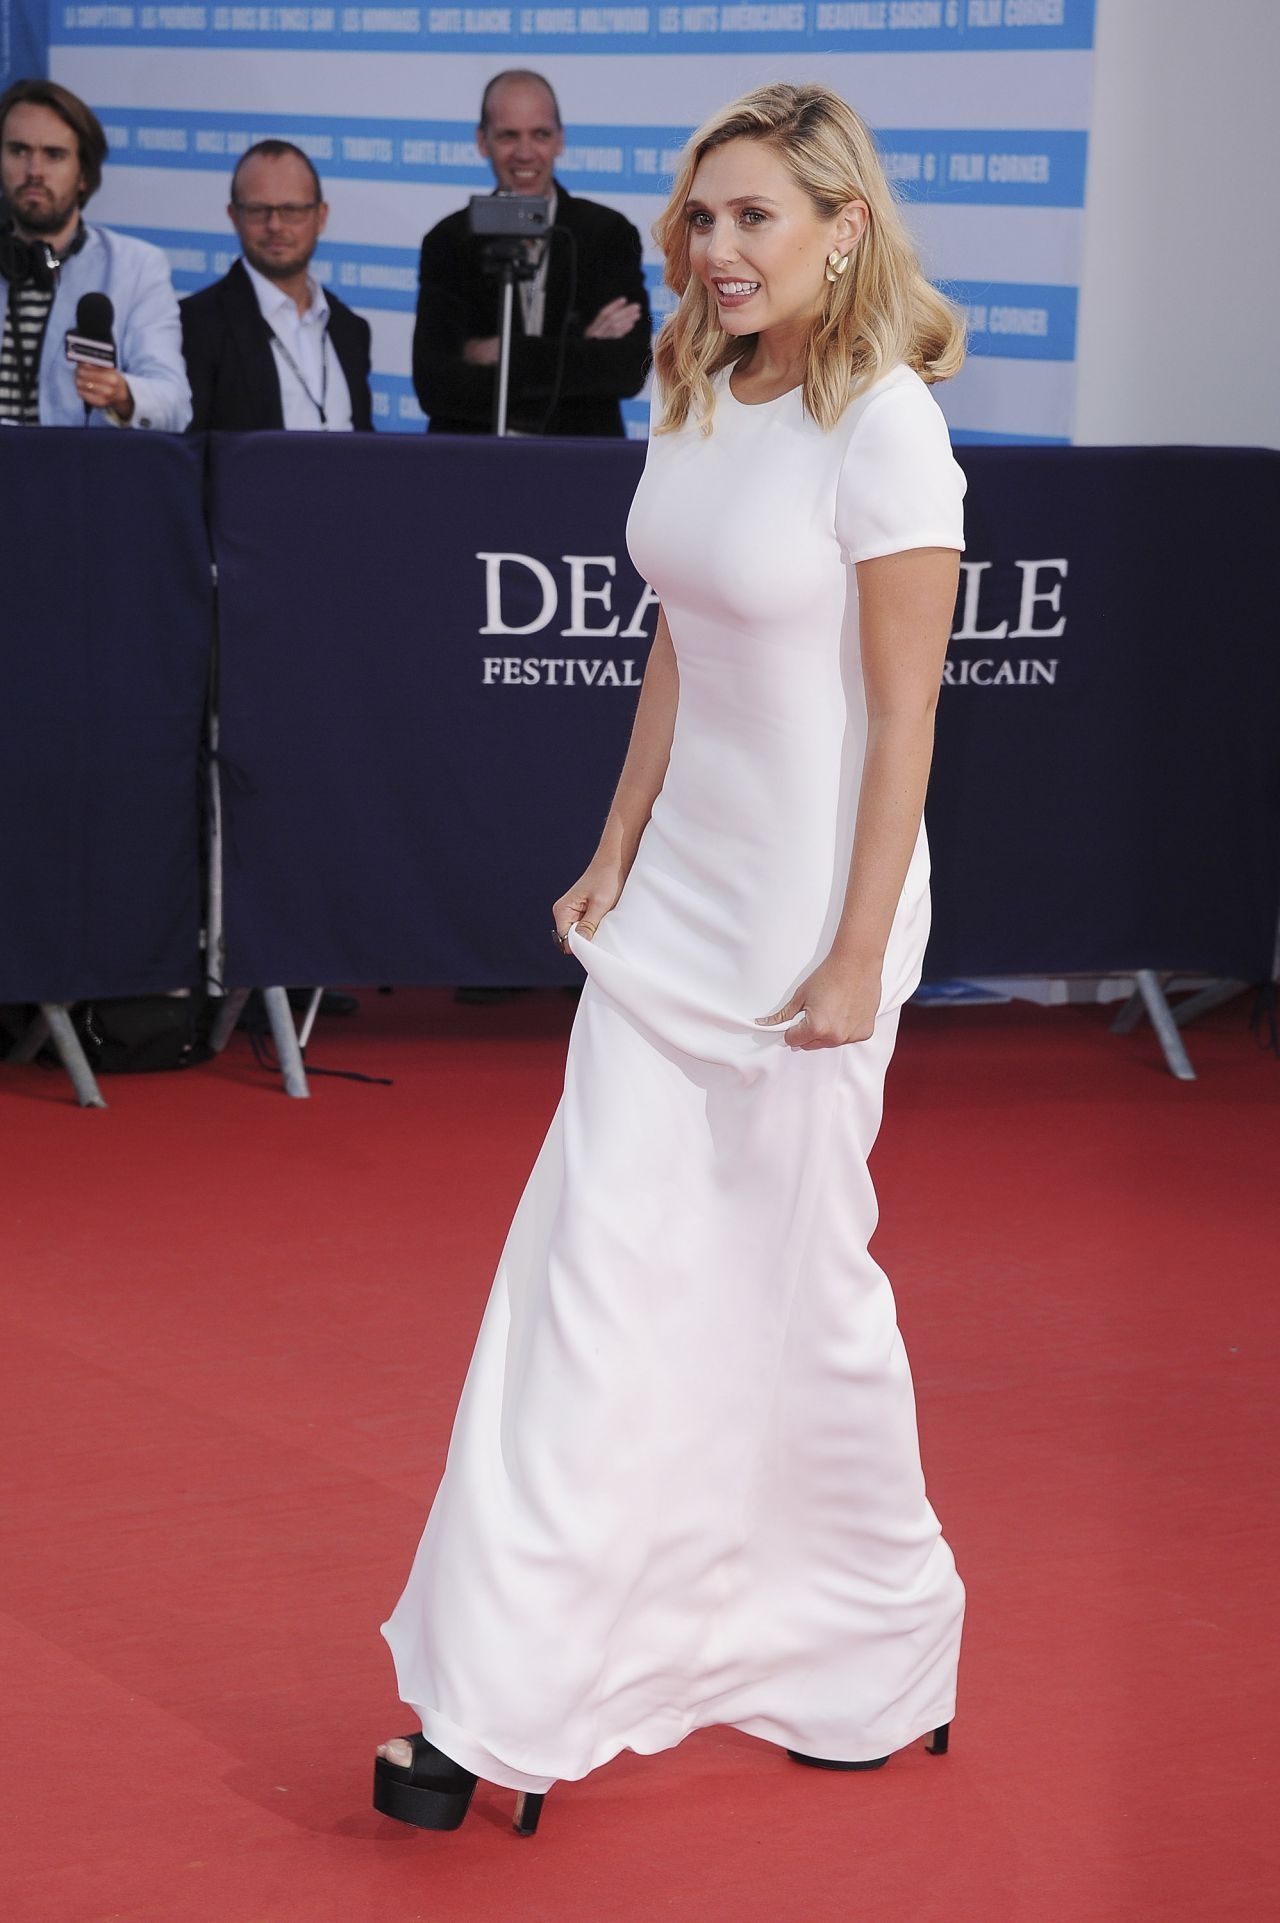 elizabeth-olsen-on-red-carpet-41st-deauville-film-festival_13